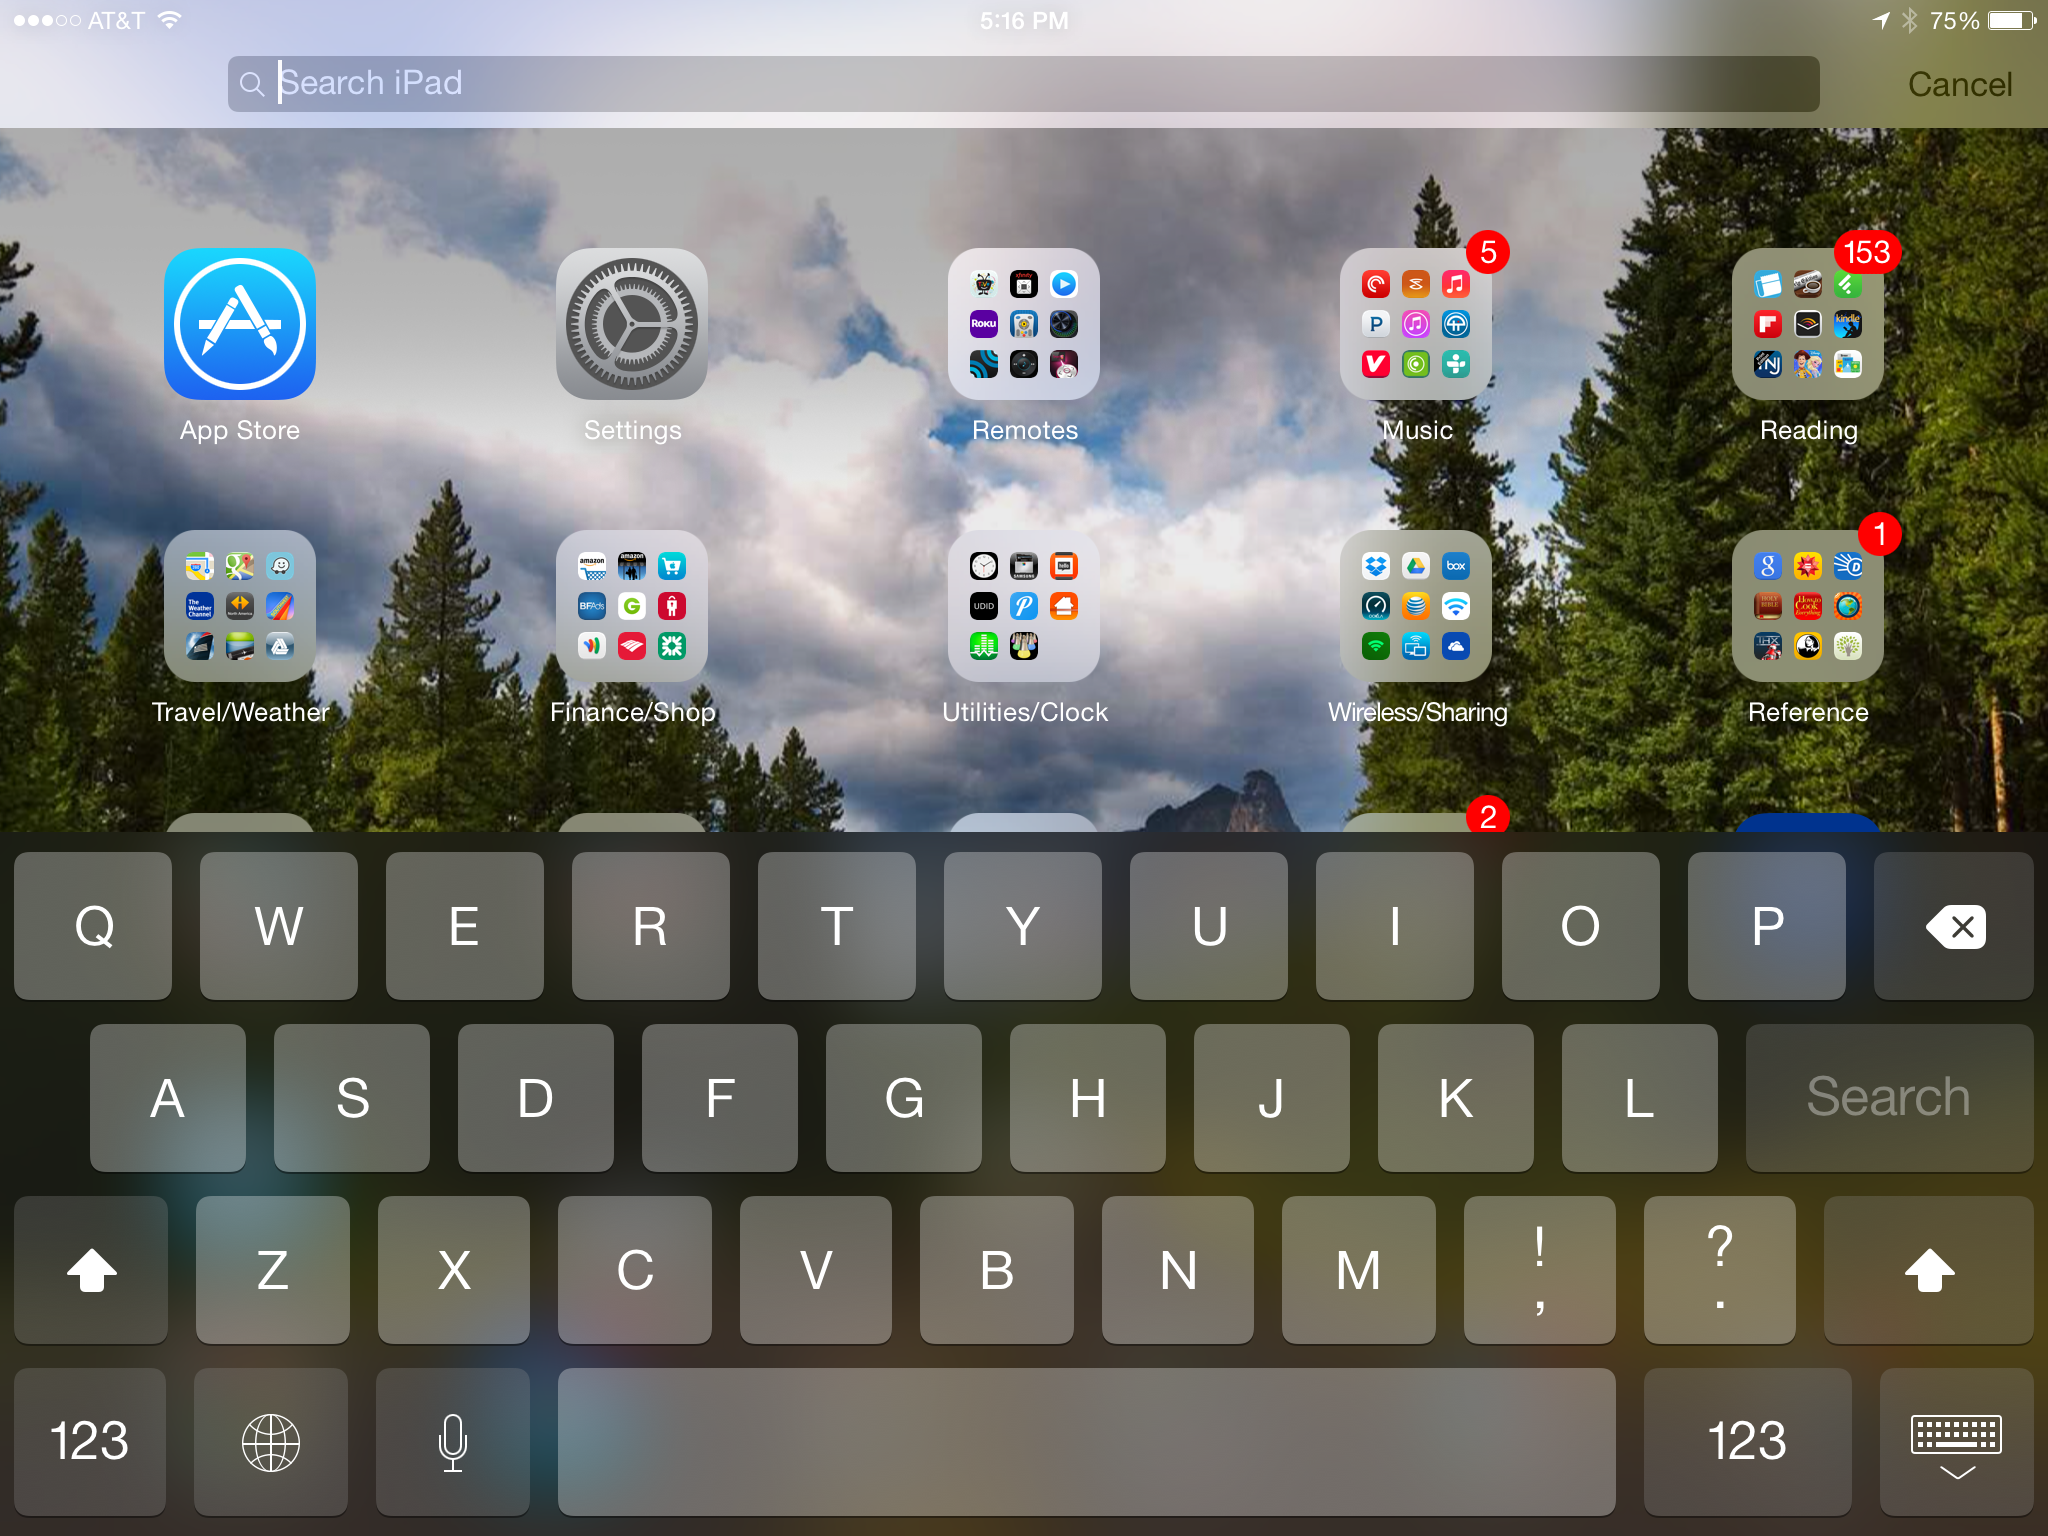 Organizing Apps tip for organizing your ipad or iphone apps – iplugdelaware